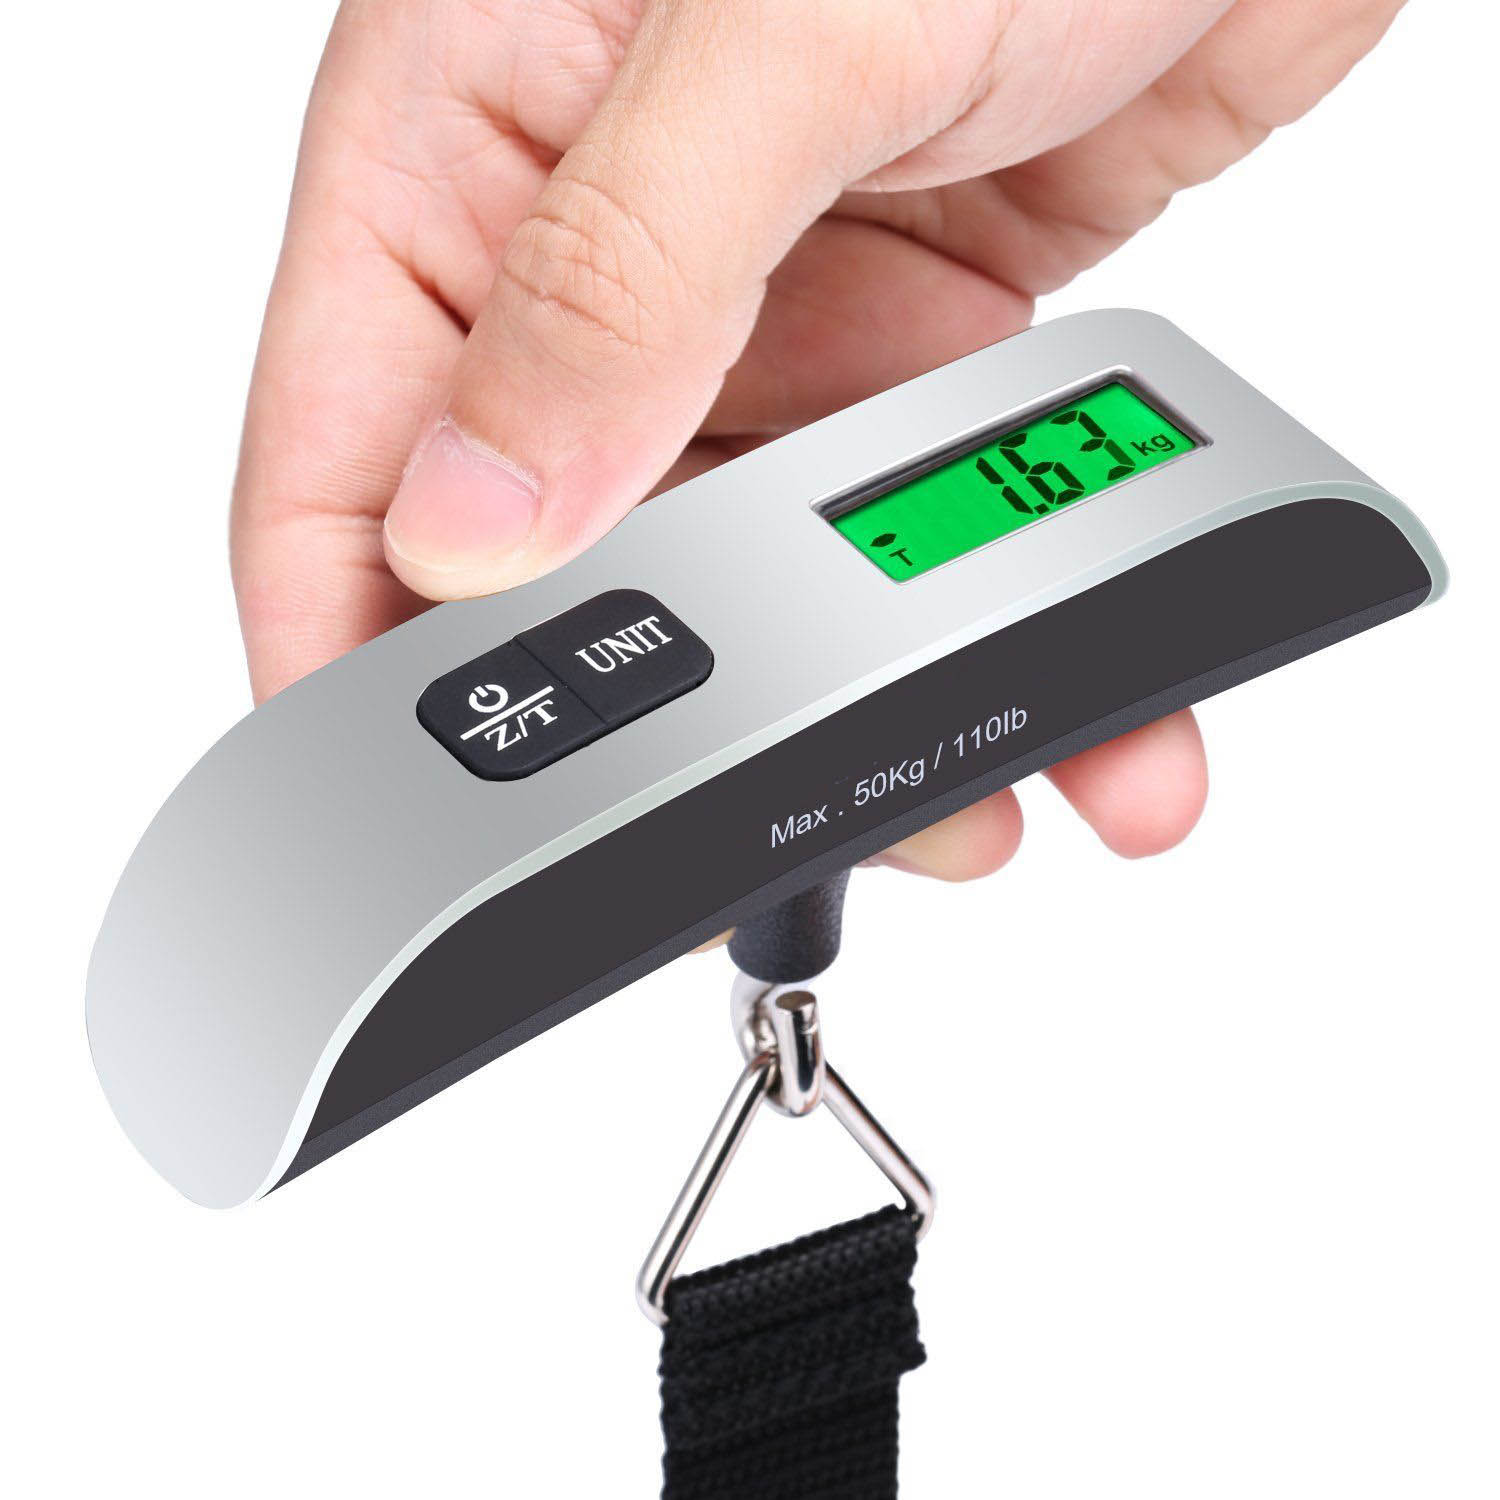 Portable scale high precision portable luggage scale travel scale spring fishing electronic scale luggage scale express scale